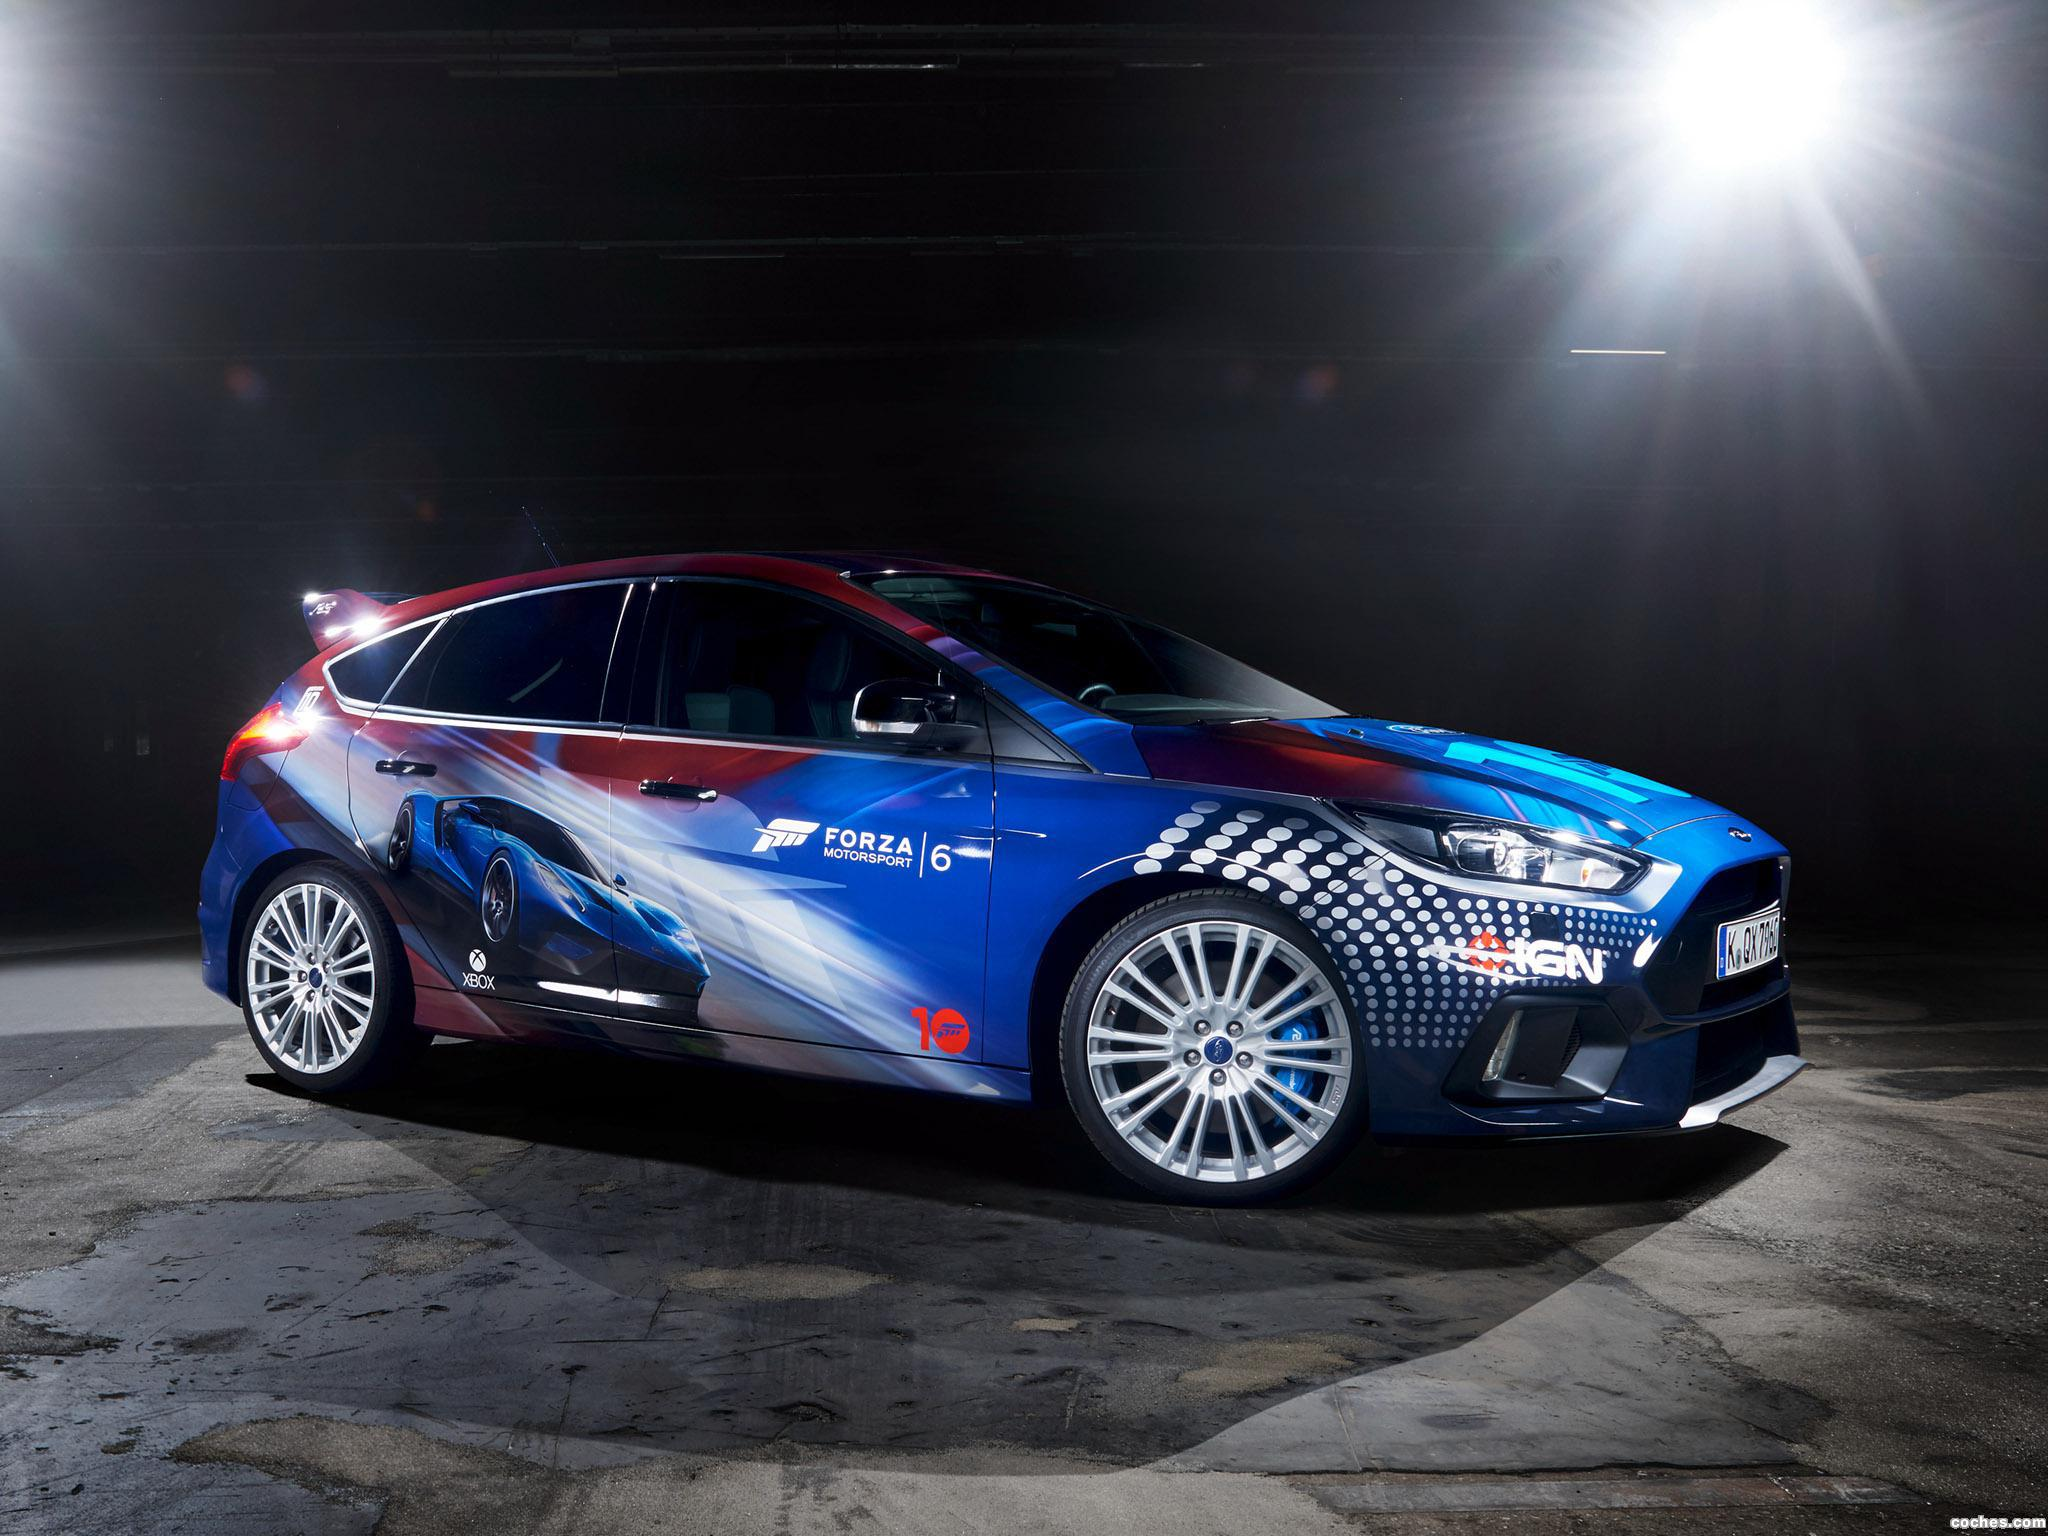 Foto 4 de Ford Focus Forza RS 2015